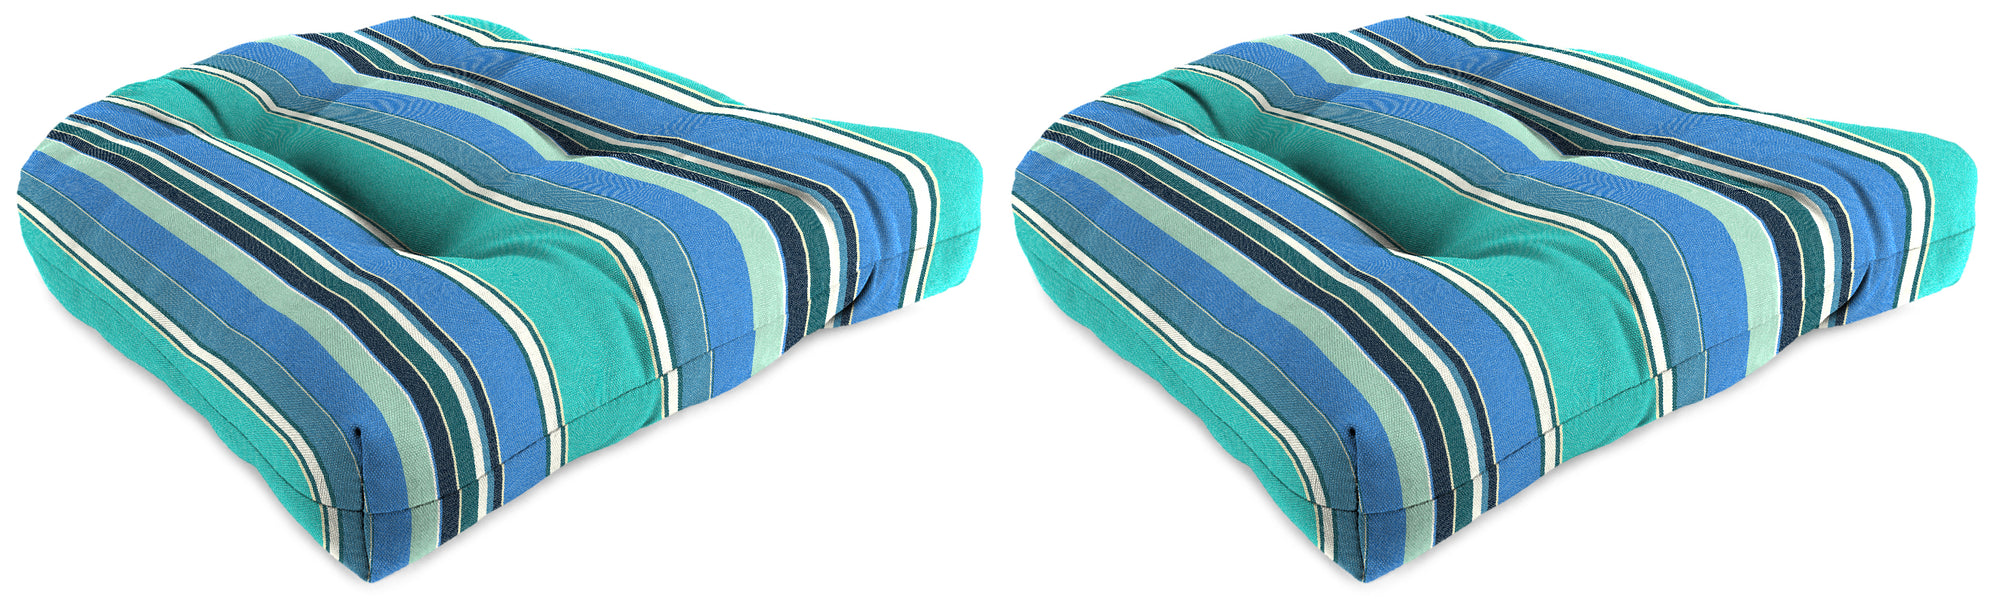 "Set of 2 Outdoor 18"" Wicker Chair Cushions-Sunbrella DOLCE STR OASIS ACR GLEN RAVEN"